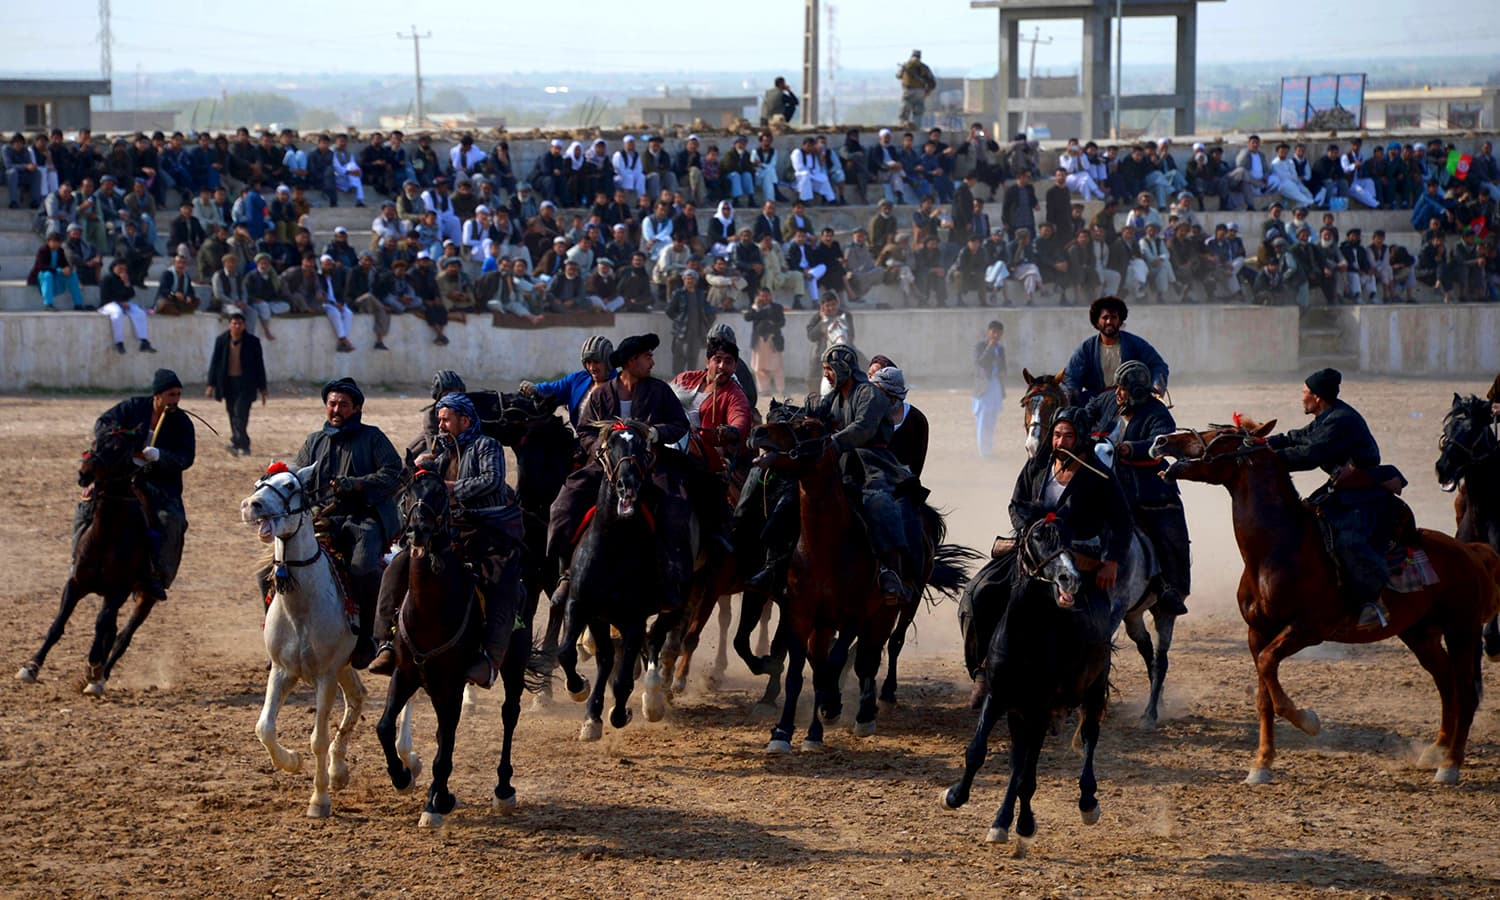 Horsemen compete for a veal carcass in buzkashi. ─ AFP